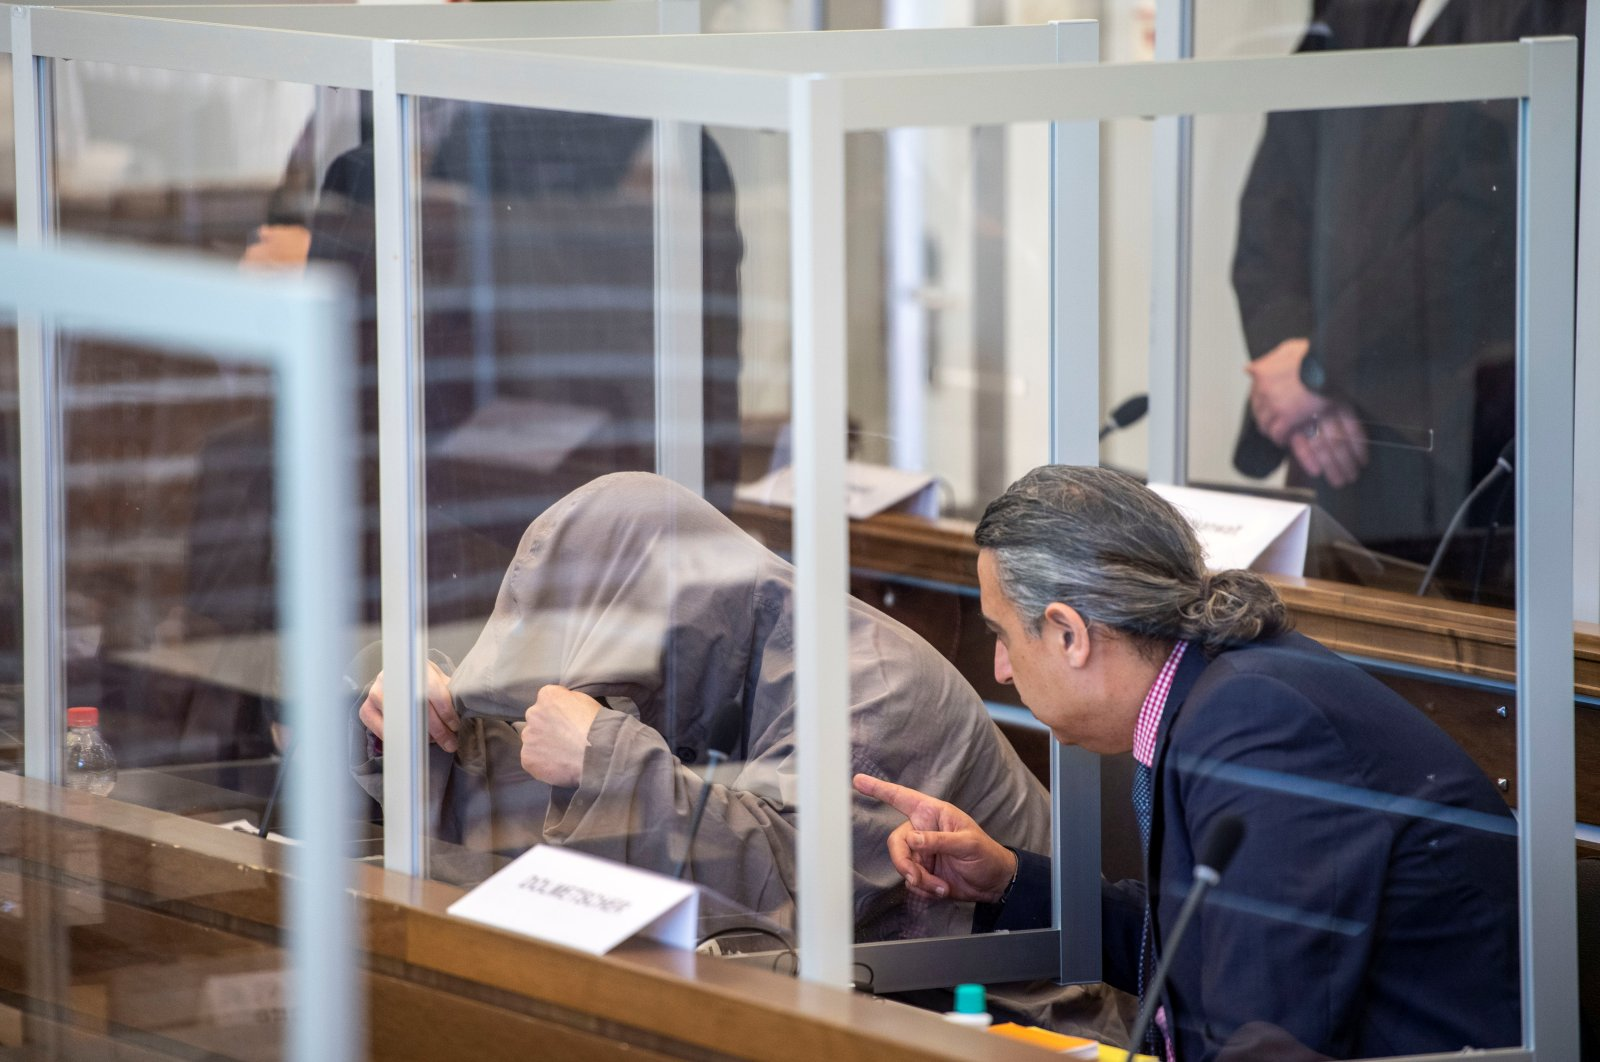 Syrian defendant Eyad A. hides himself under his hood prior to the first trial of suspected members of Syrian regime's security services for crimes against humanity, in Koblenz, Germany, April 23, 2020. REUTERS